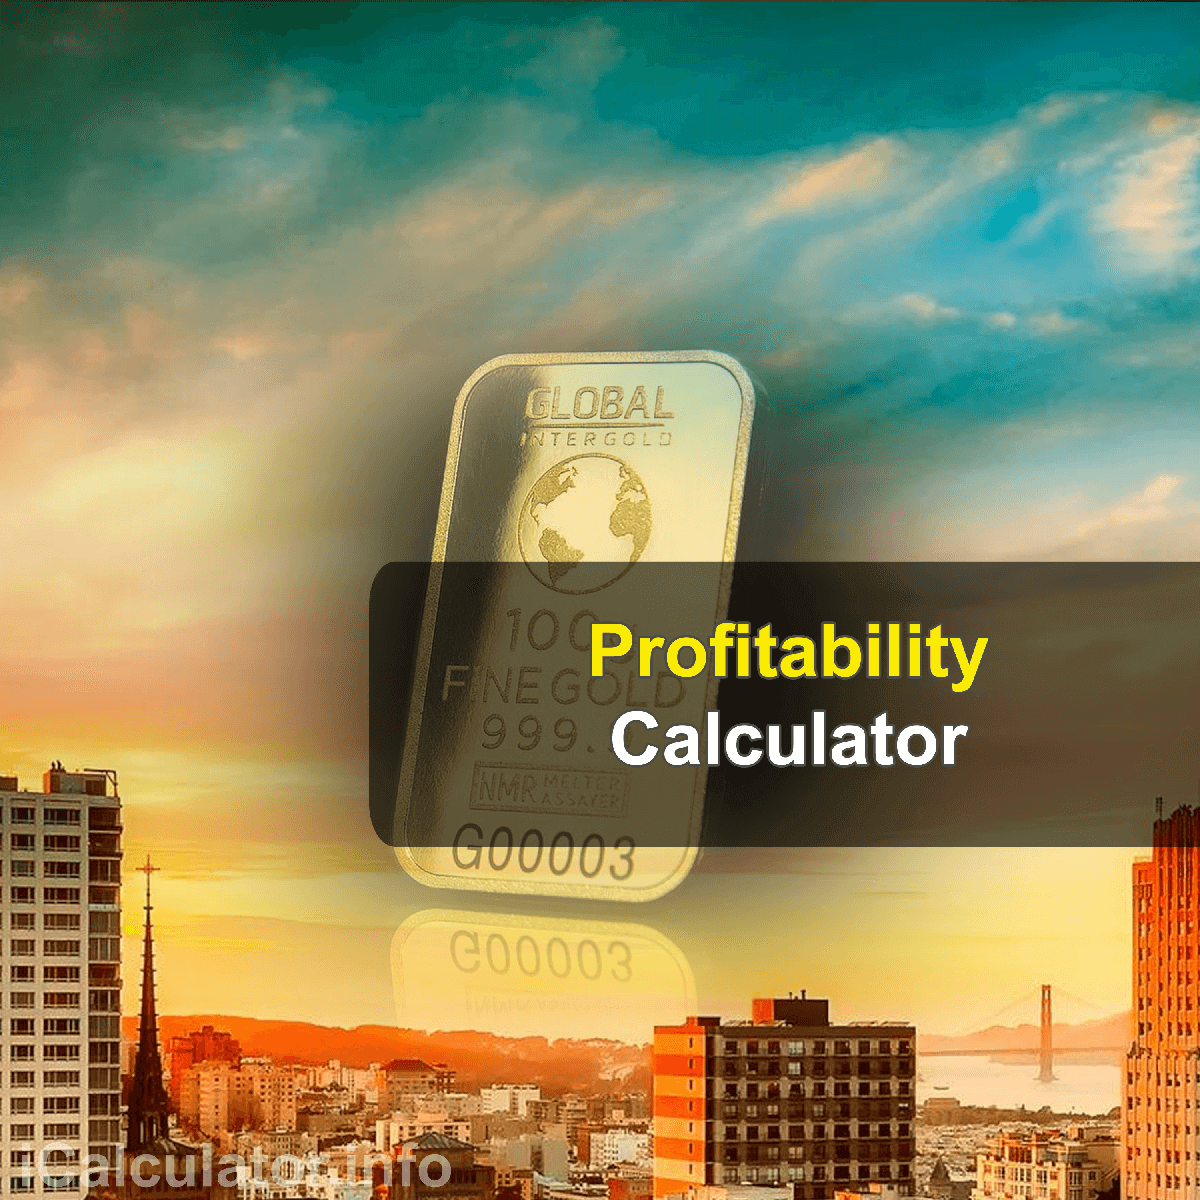 Profit Calculator. This image provides details of how to calculate profit using a calculator and notepad. By using the profit formula, Profit Calculator provides a true calculation of the profit that is earned by your business related to its revenue